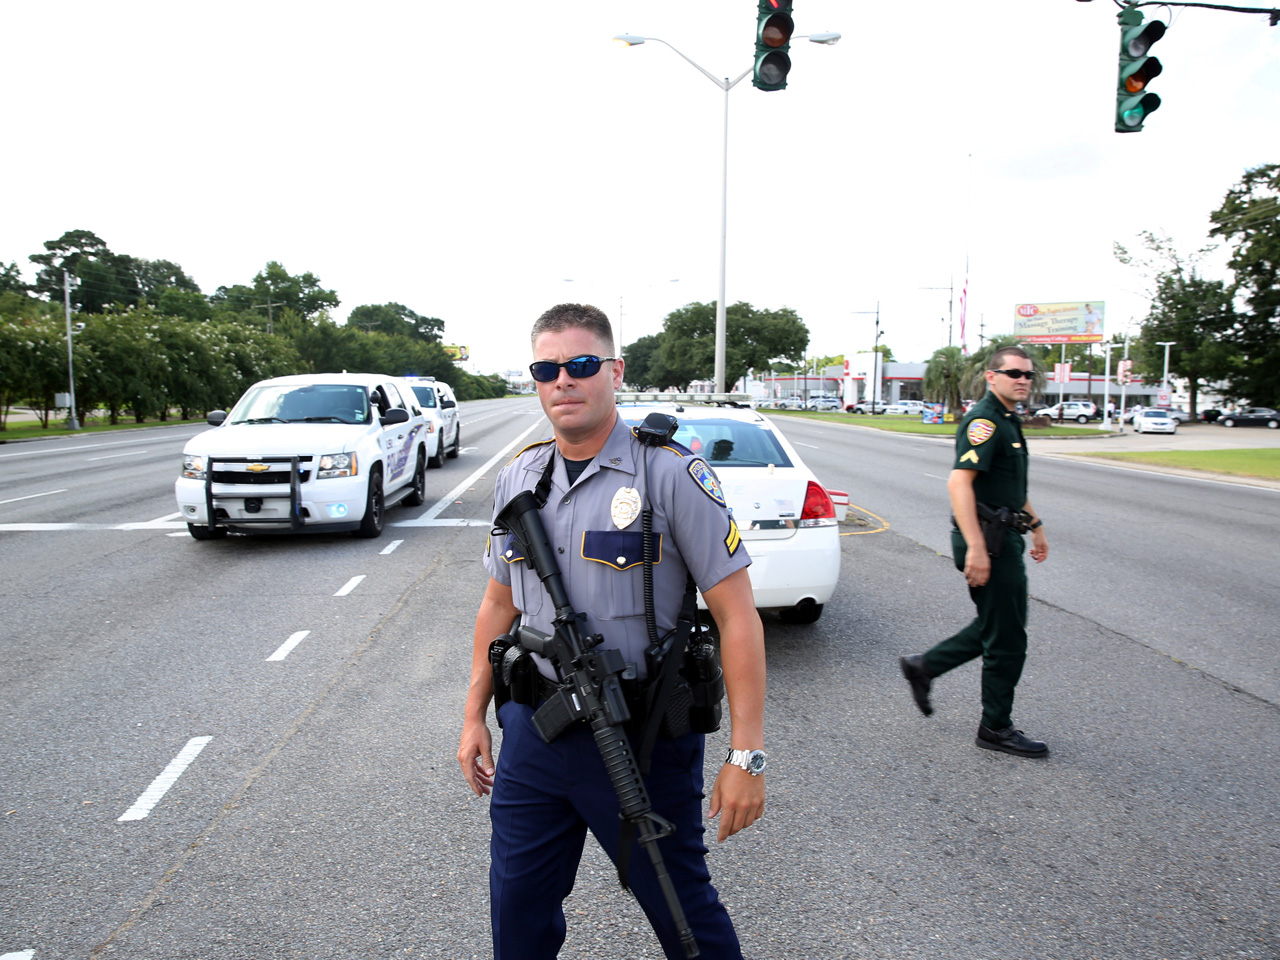 3 police killed, 3 more wounded in Baton Rouge - CBS News